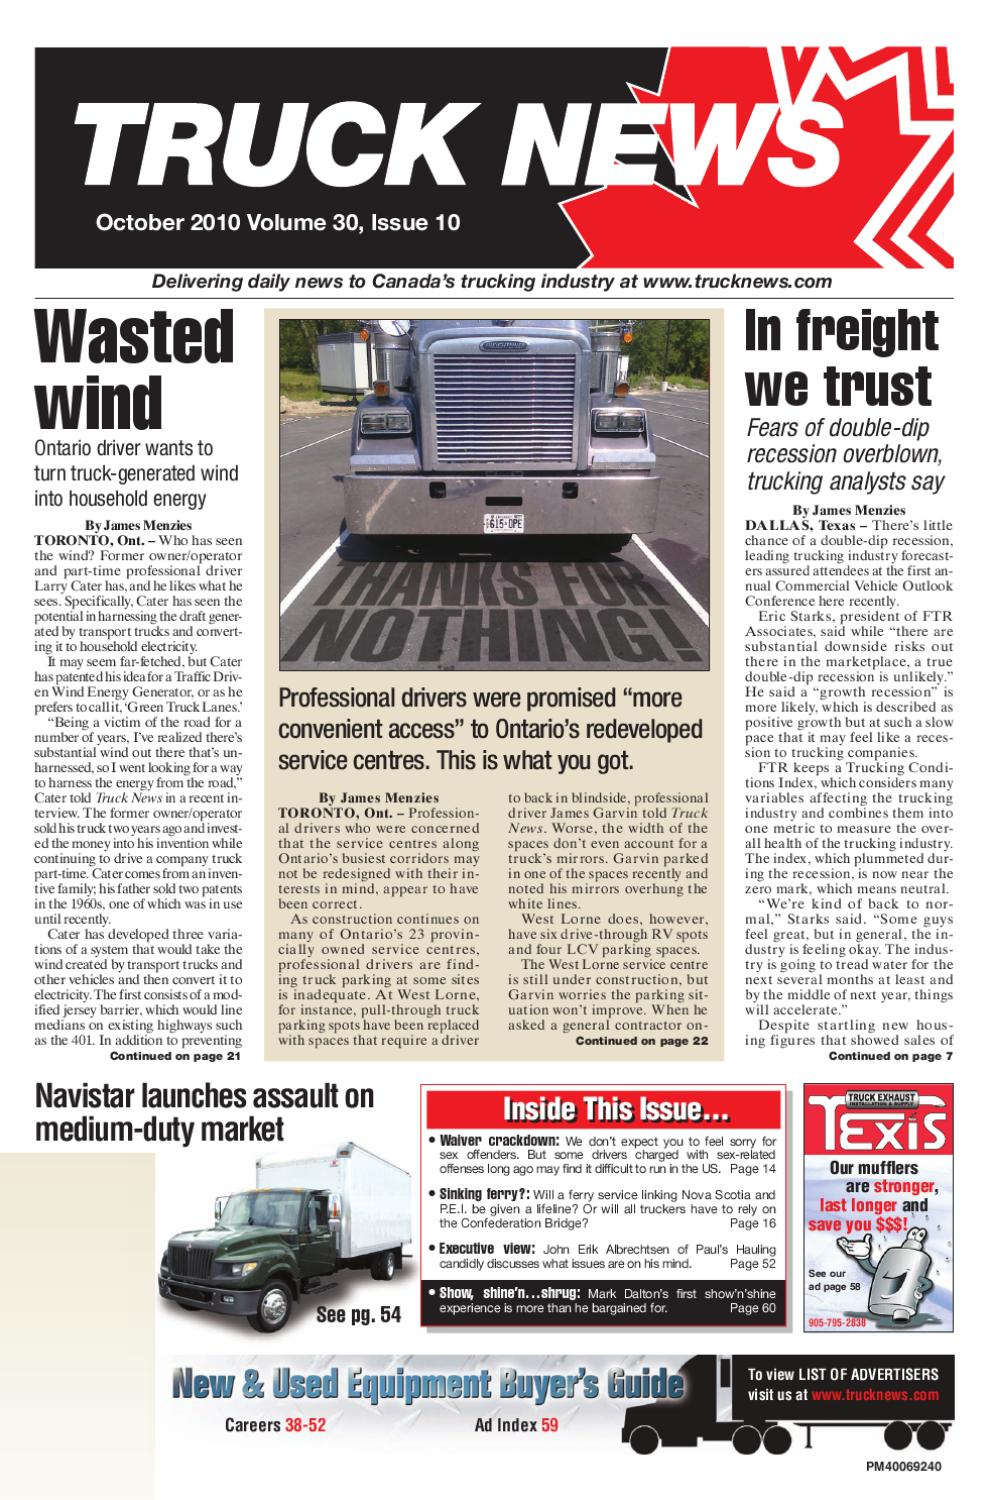 Truck News October 2010 by Annex Business Media - issuu on